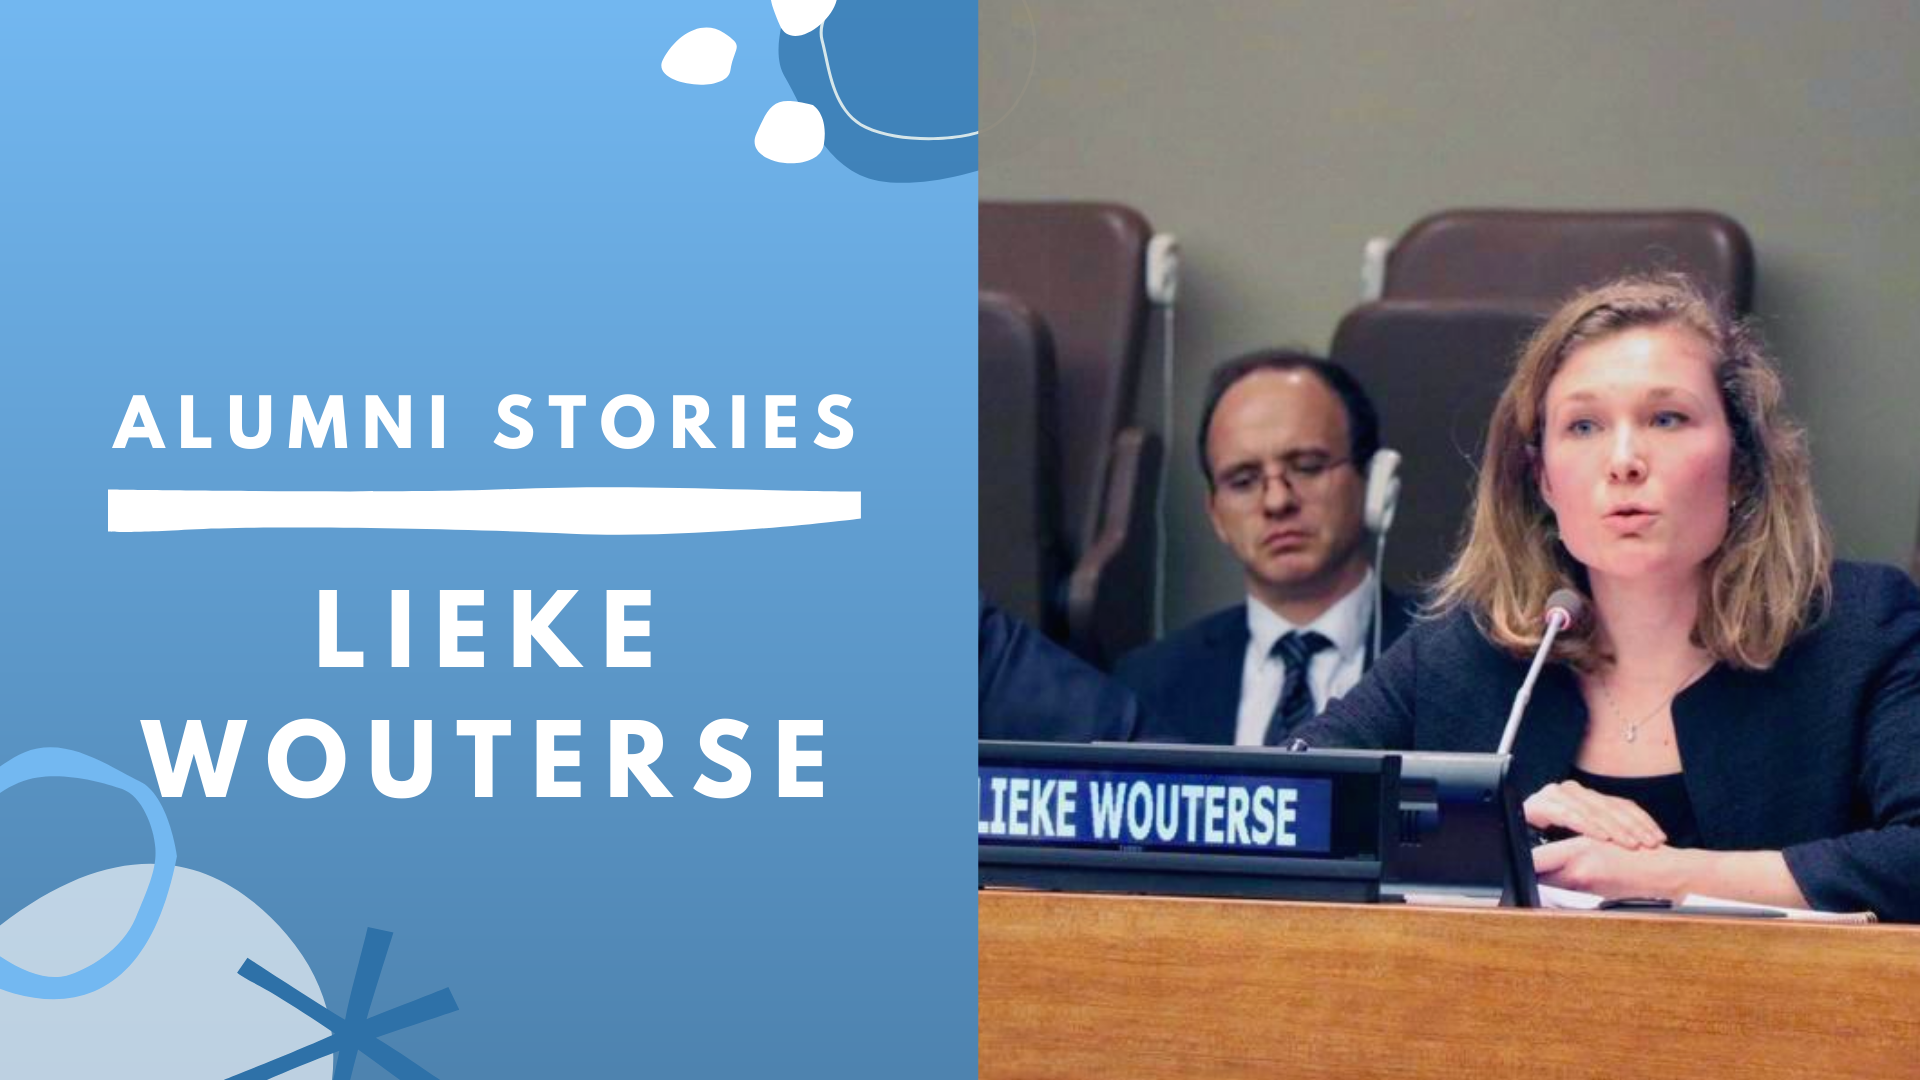 Alumni Stories: Lieke Wouterse